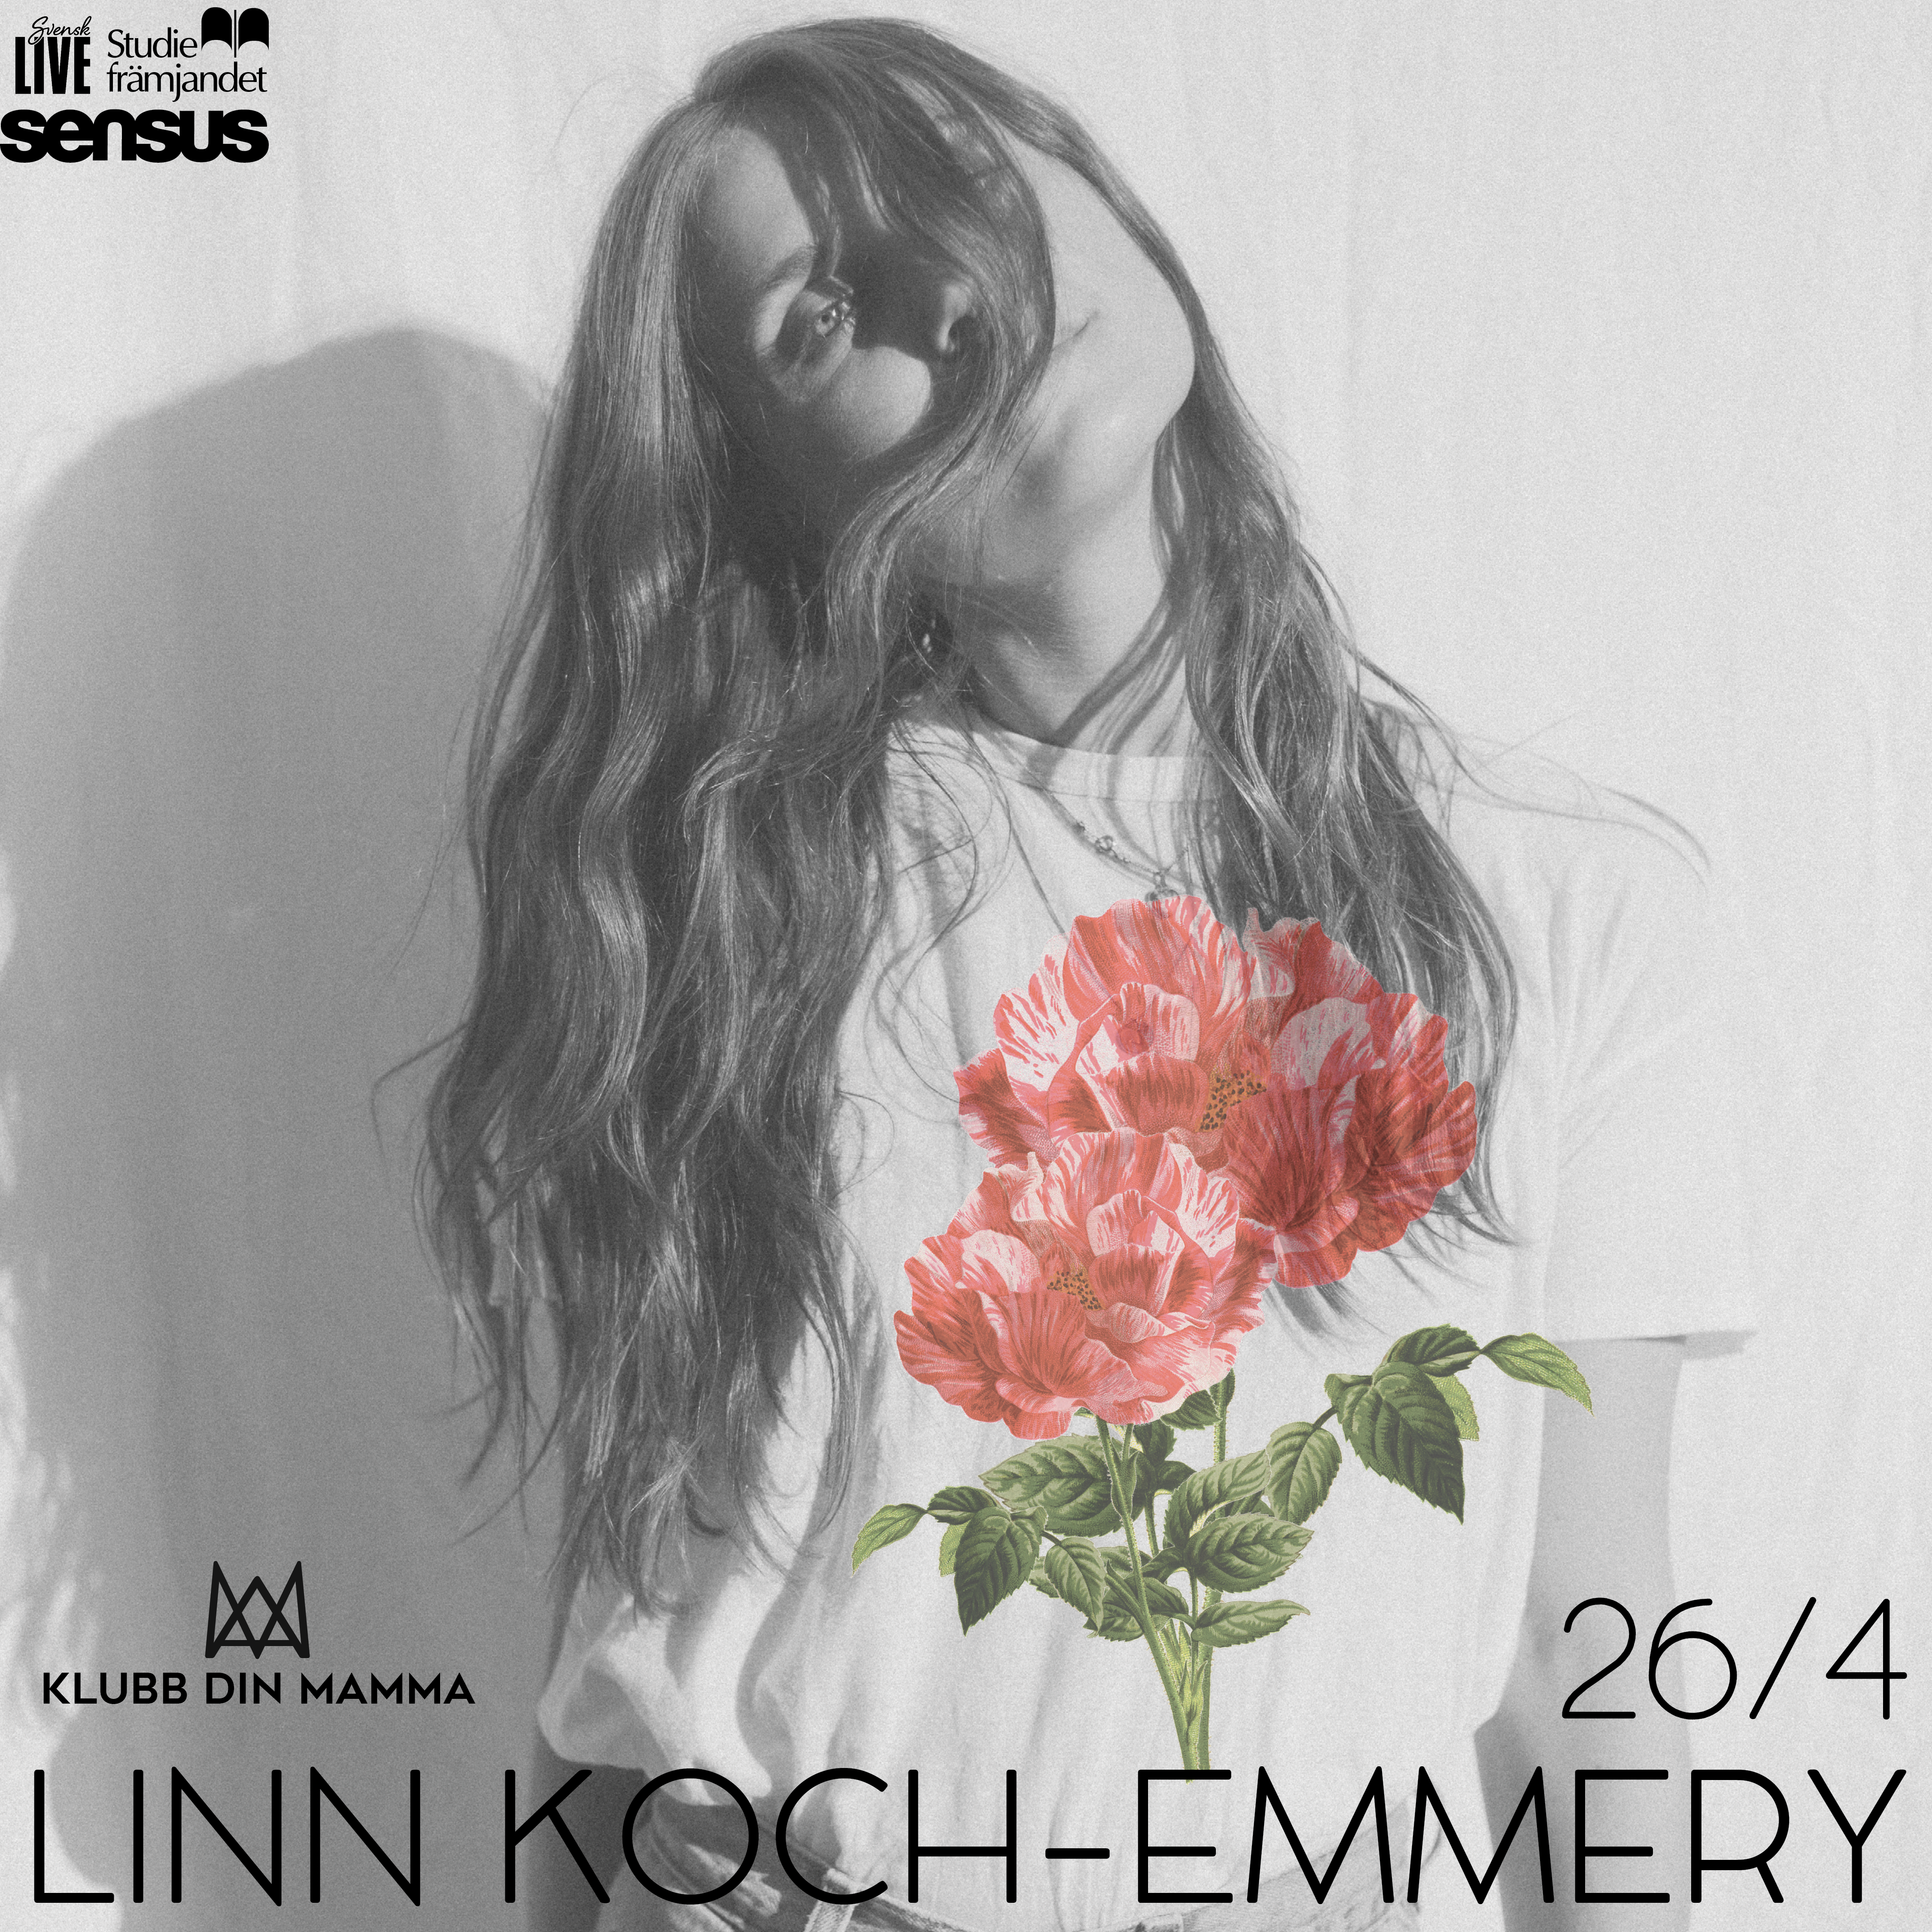 Linn Koch-Emmery - 26 april